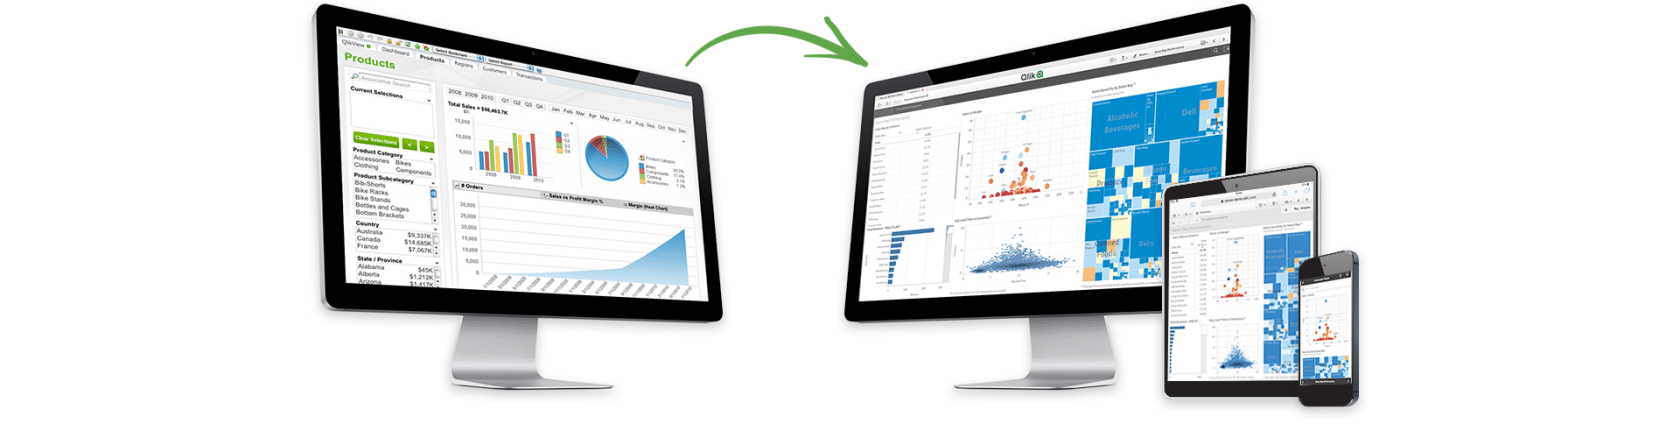 qlikview, qliksense, qlik, qlik sense, qlikview converter, qlik sense software, analytics, business intelligence